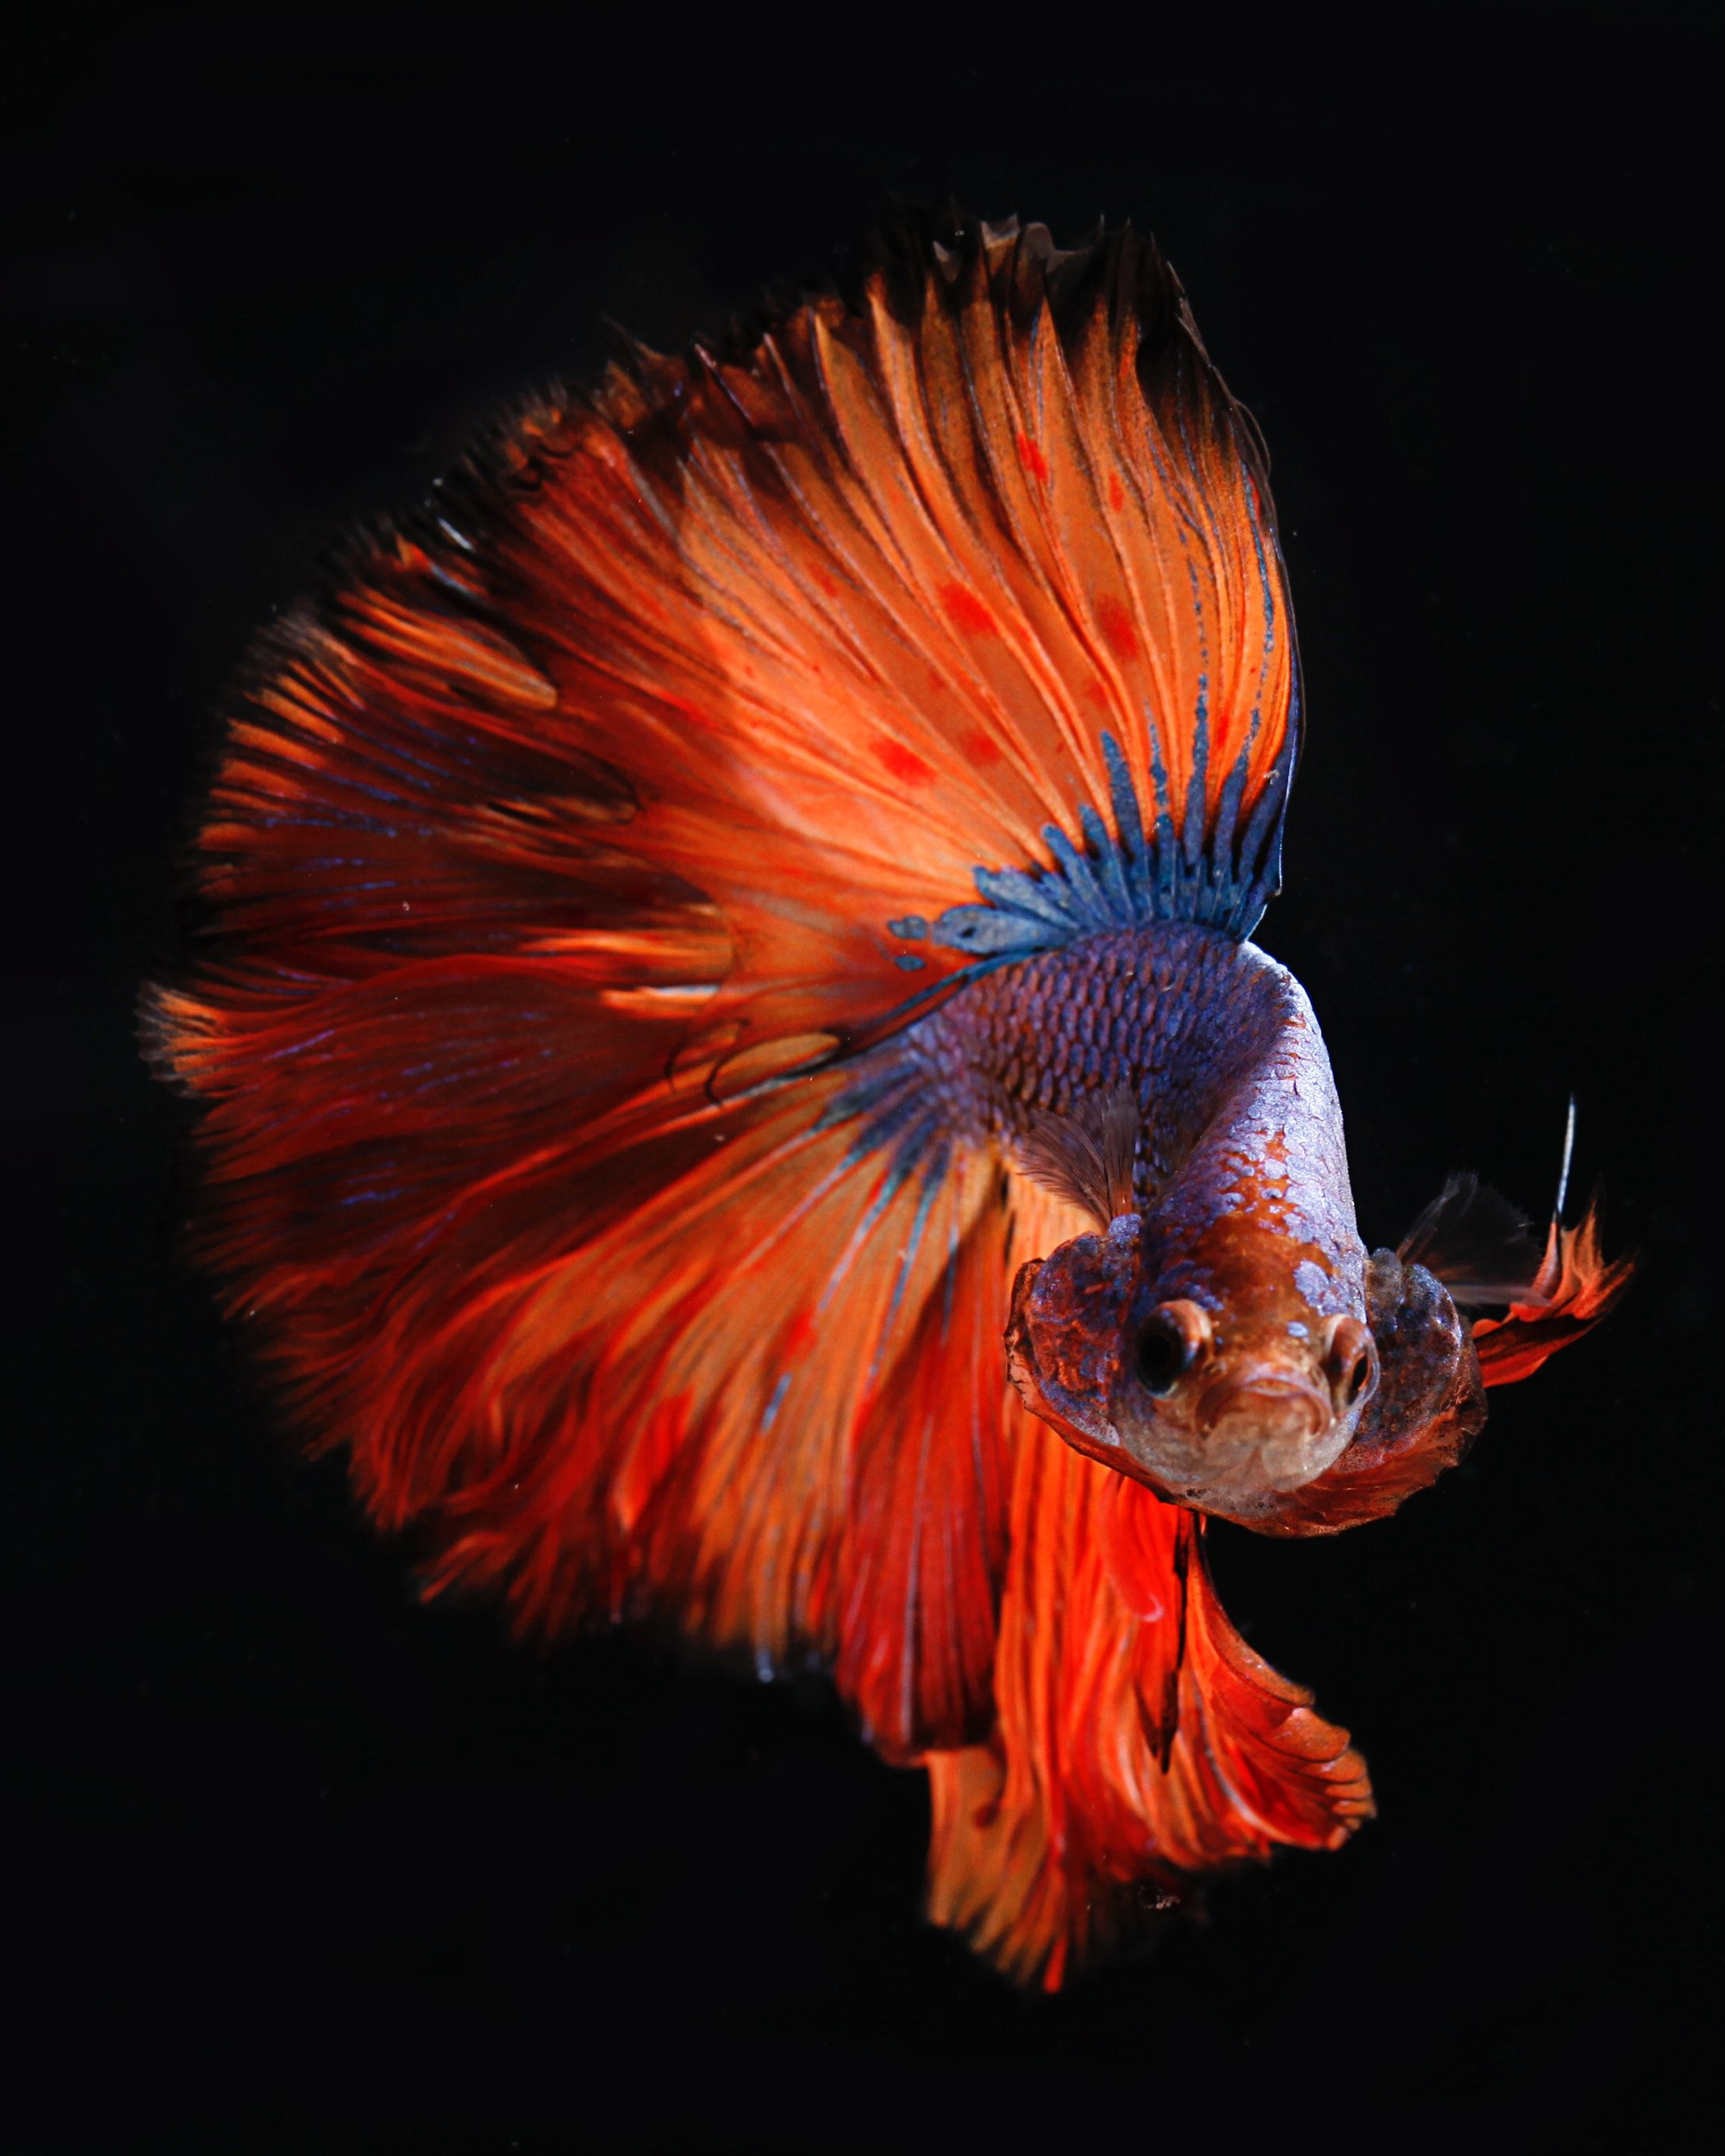 Animals Fish Orange Tail Underwater Black Background Wallpapers Hd 4k Background For Android Siamese Fighting Fish Beautiful Fish Betta Fish